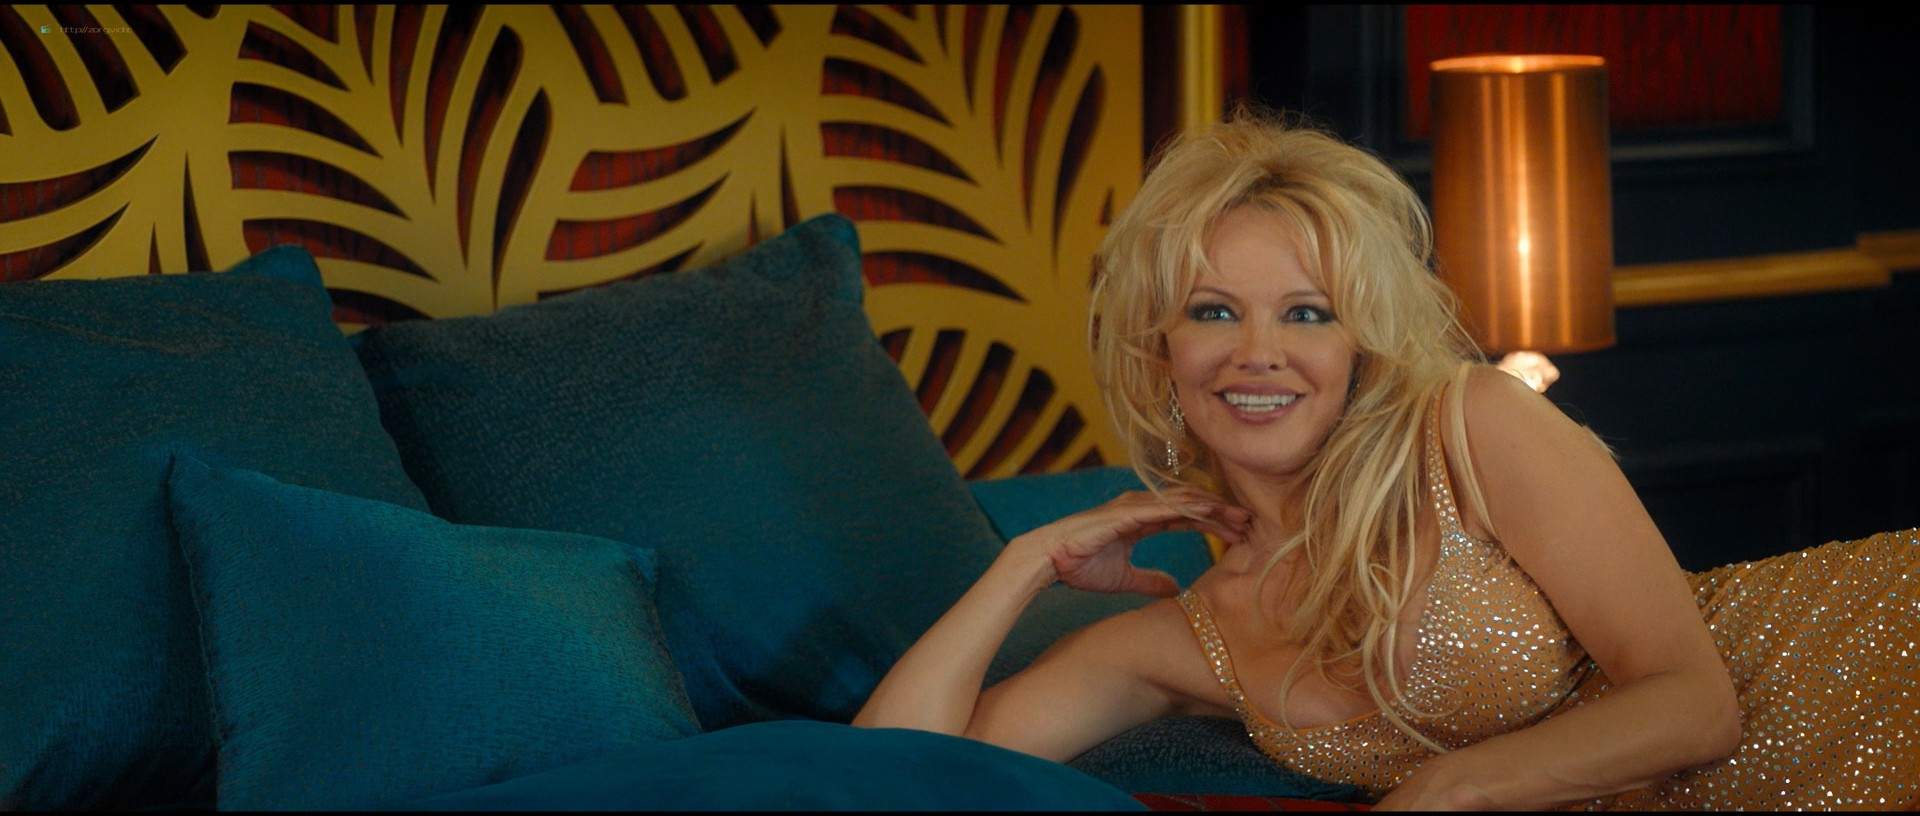 Pamela Anderson sexy Élodie Fontan and others hot - Nicky Larson et le parfum de Cupidon (2018) 1080p BluRay (4)